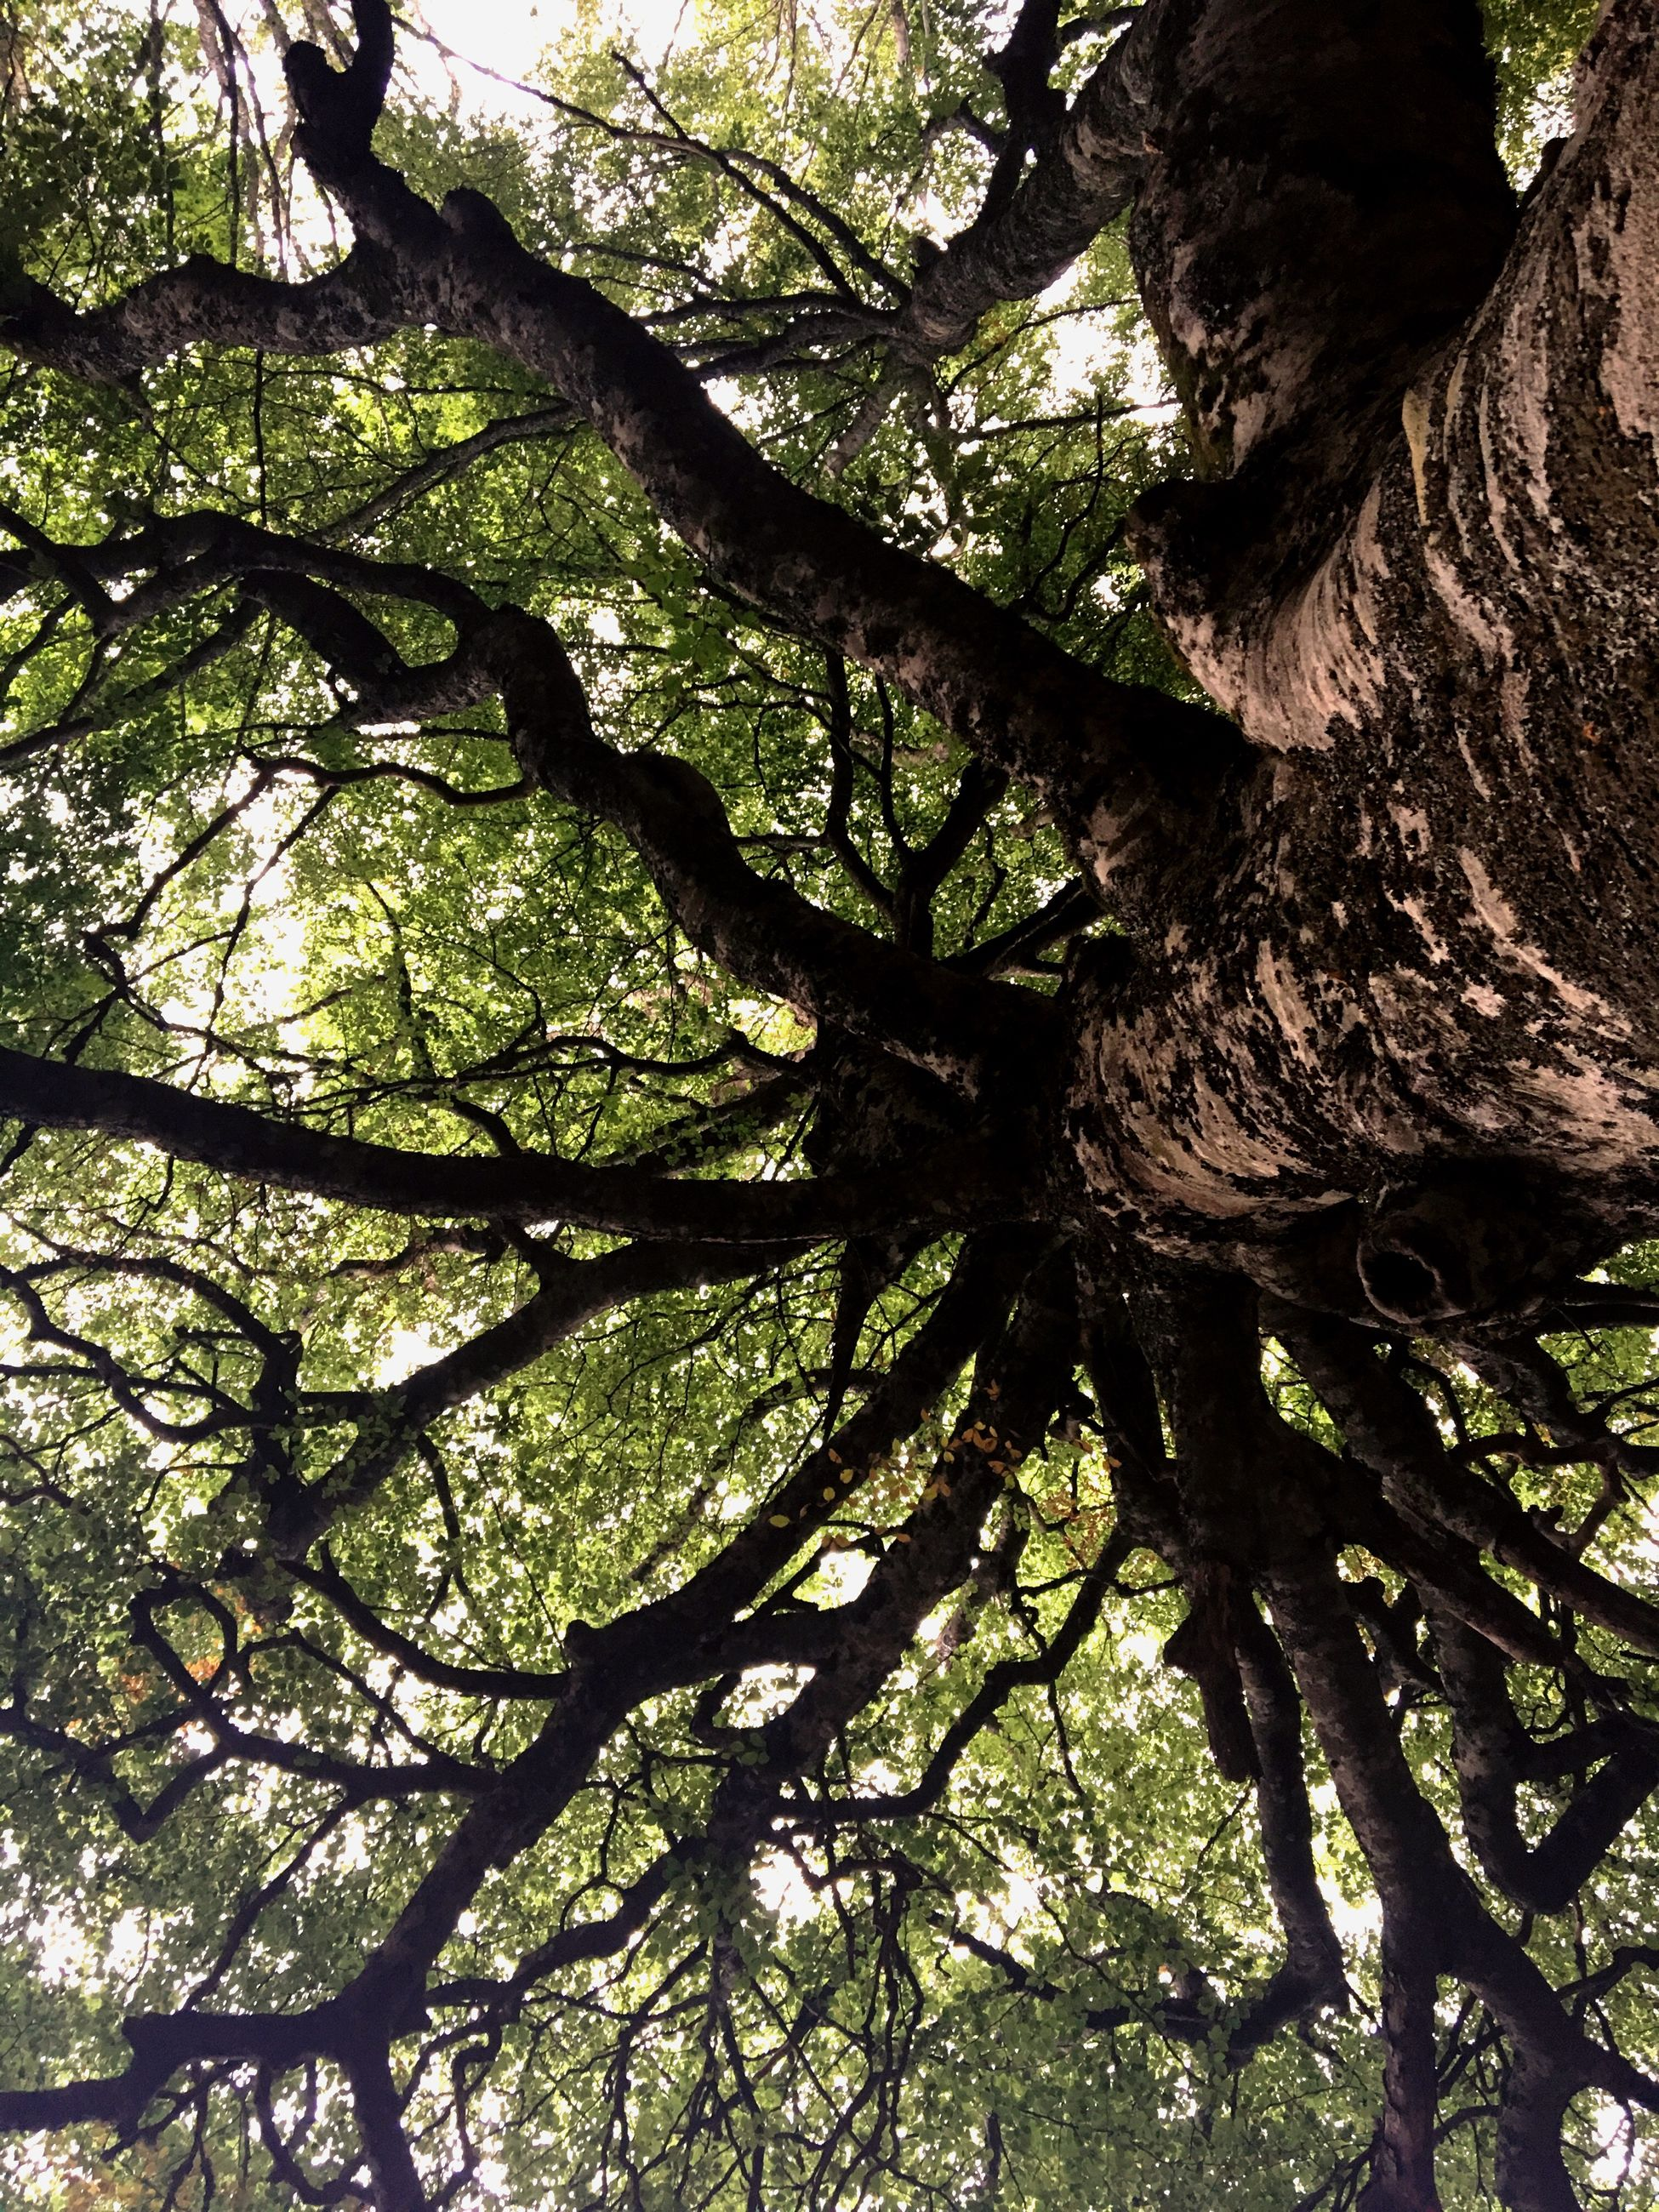 tree, tree trunk, branch, nature, growth, no people, day, low angle view, outdoors, tranquility, beauty in nature, sunlight, close-up, sky